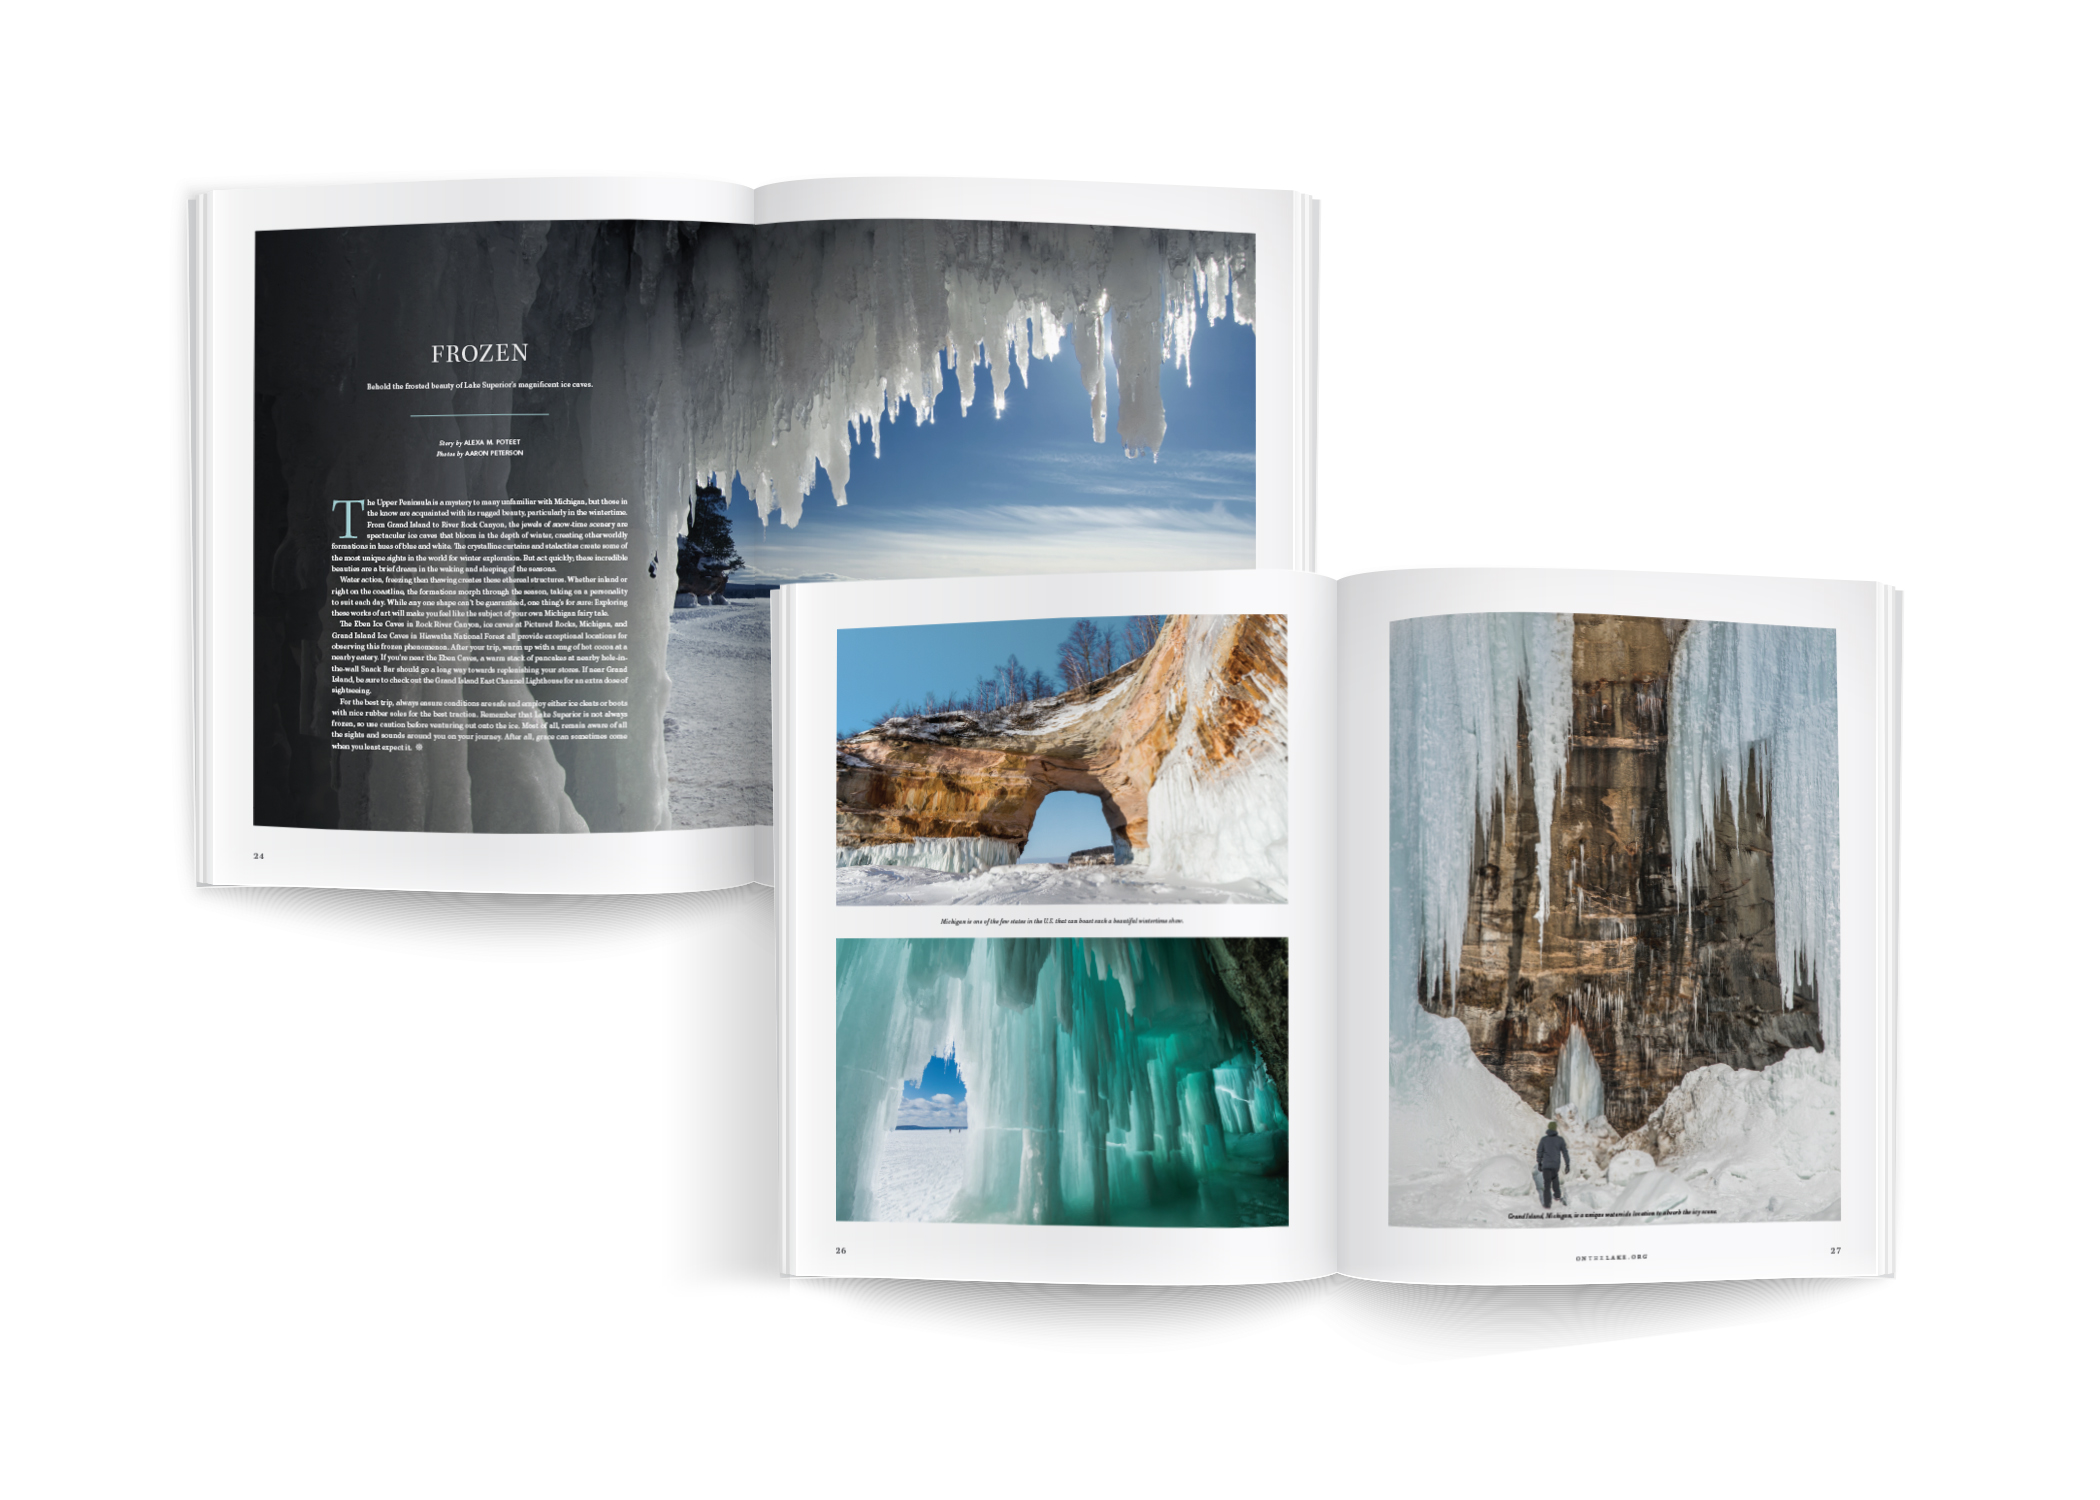 """Open magazine spreads display article titled """"Frozen"""" and several images of ice caves and icicles"""